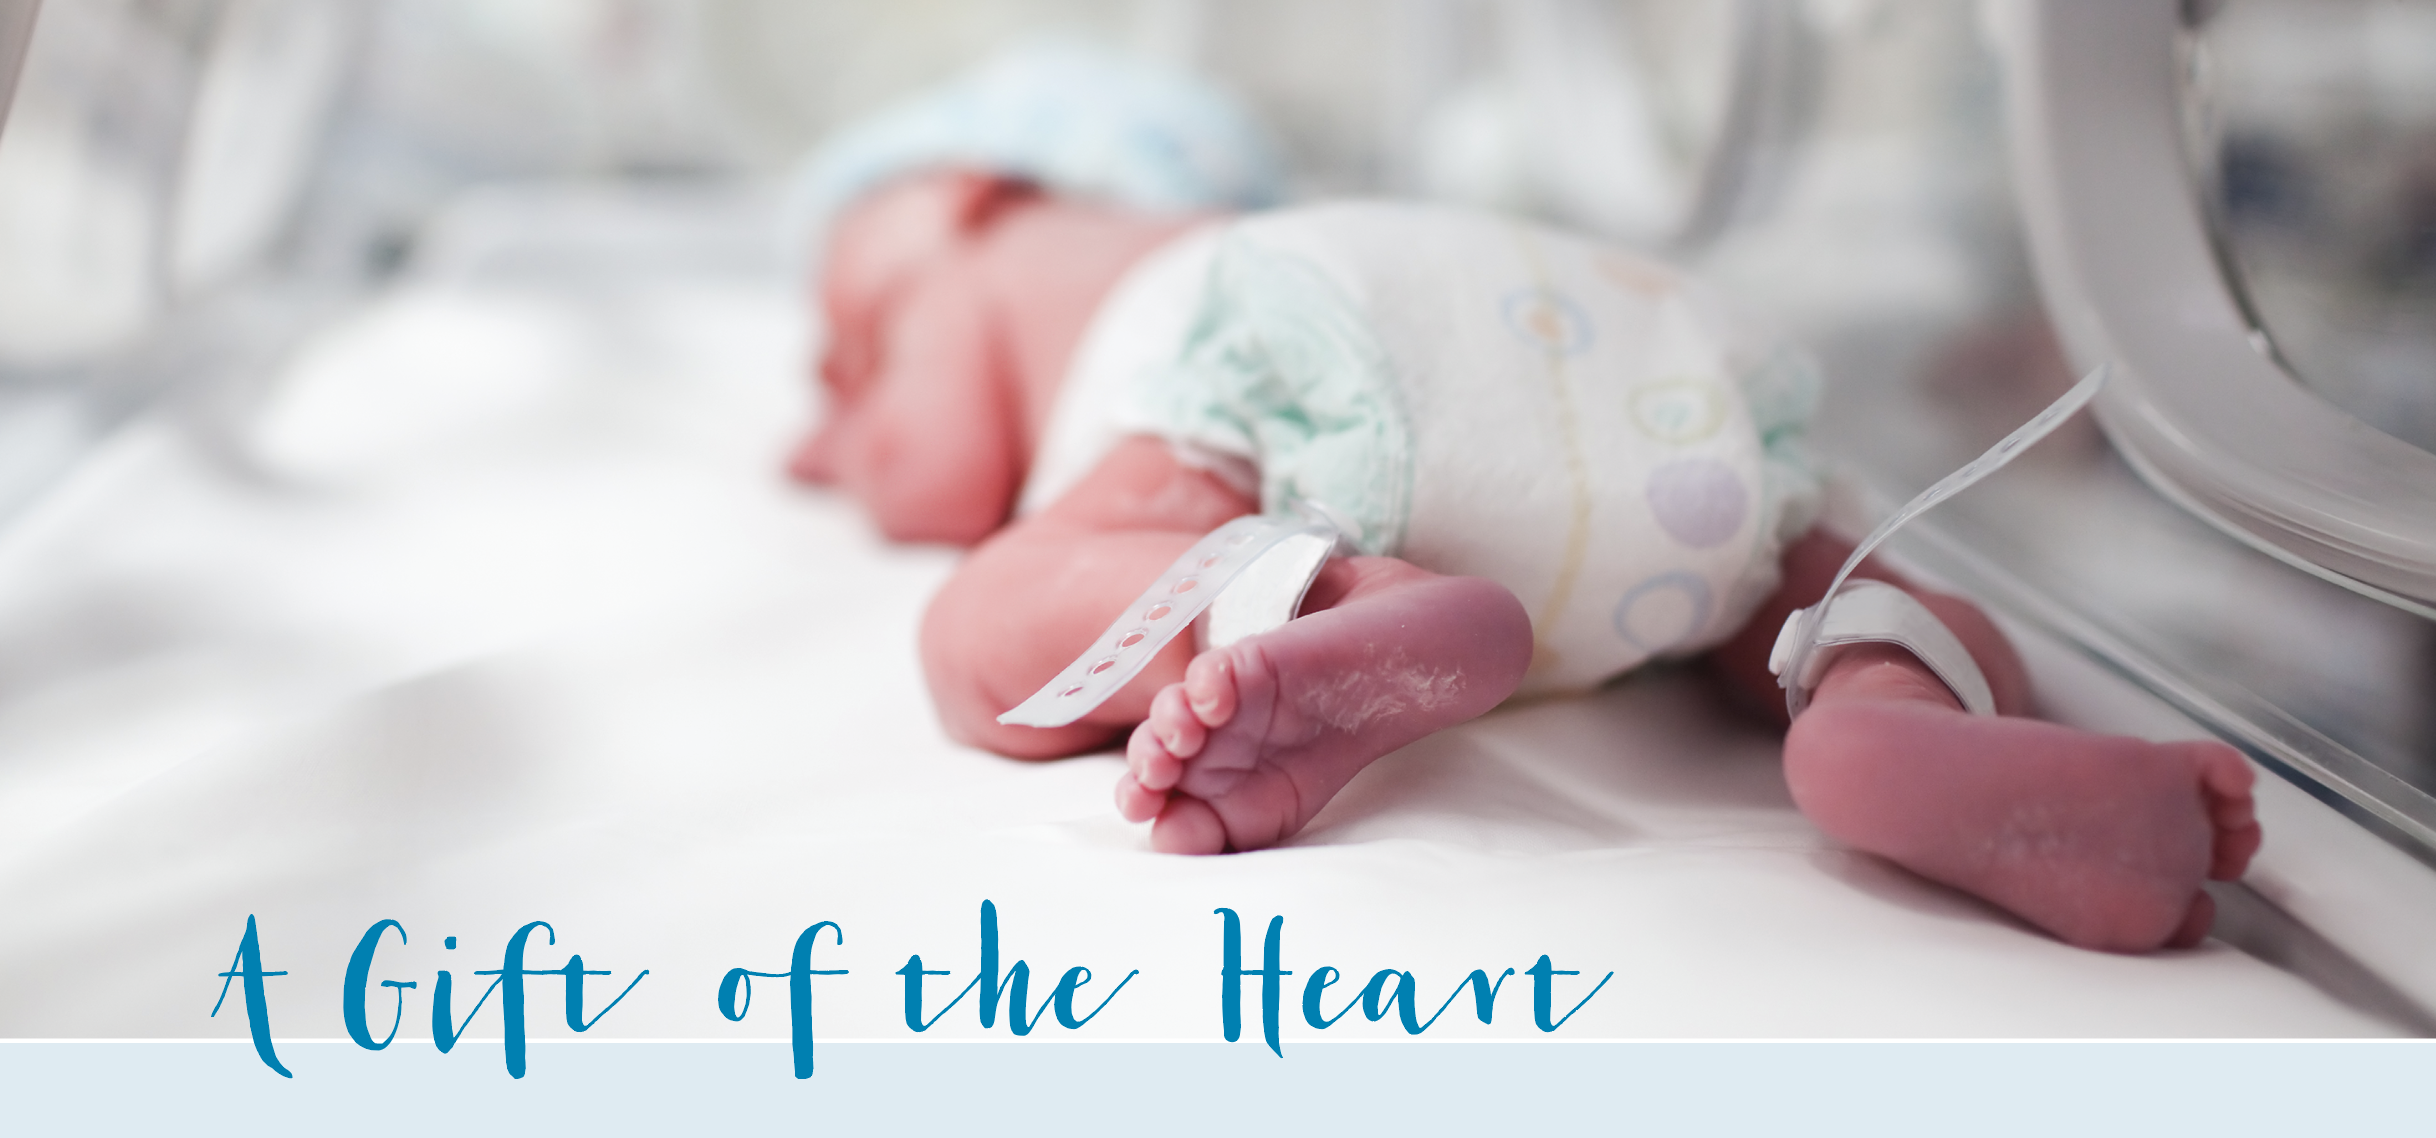 Gift of the Heart; photo of newborn baby